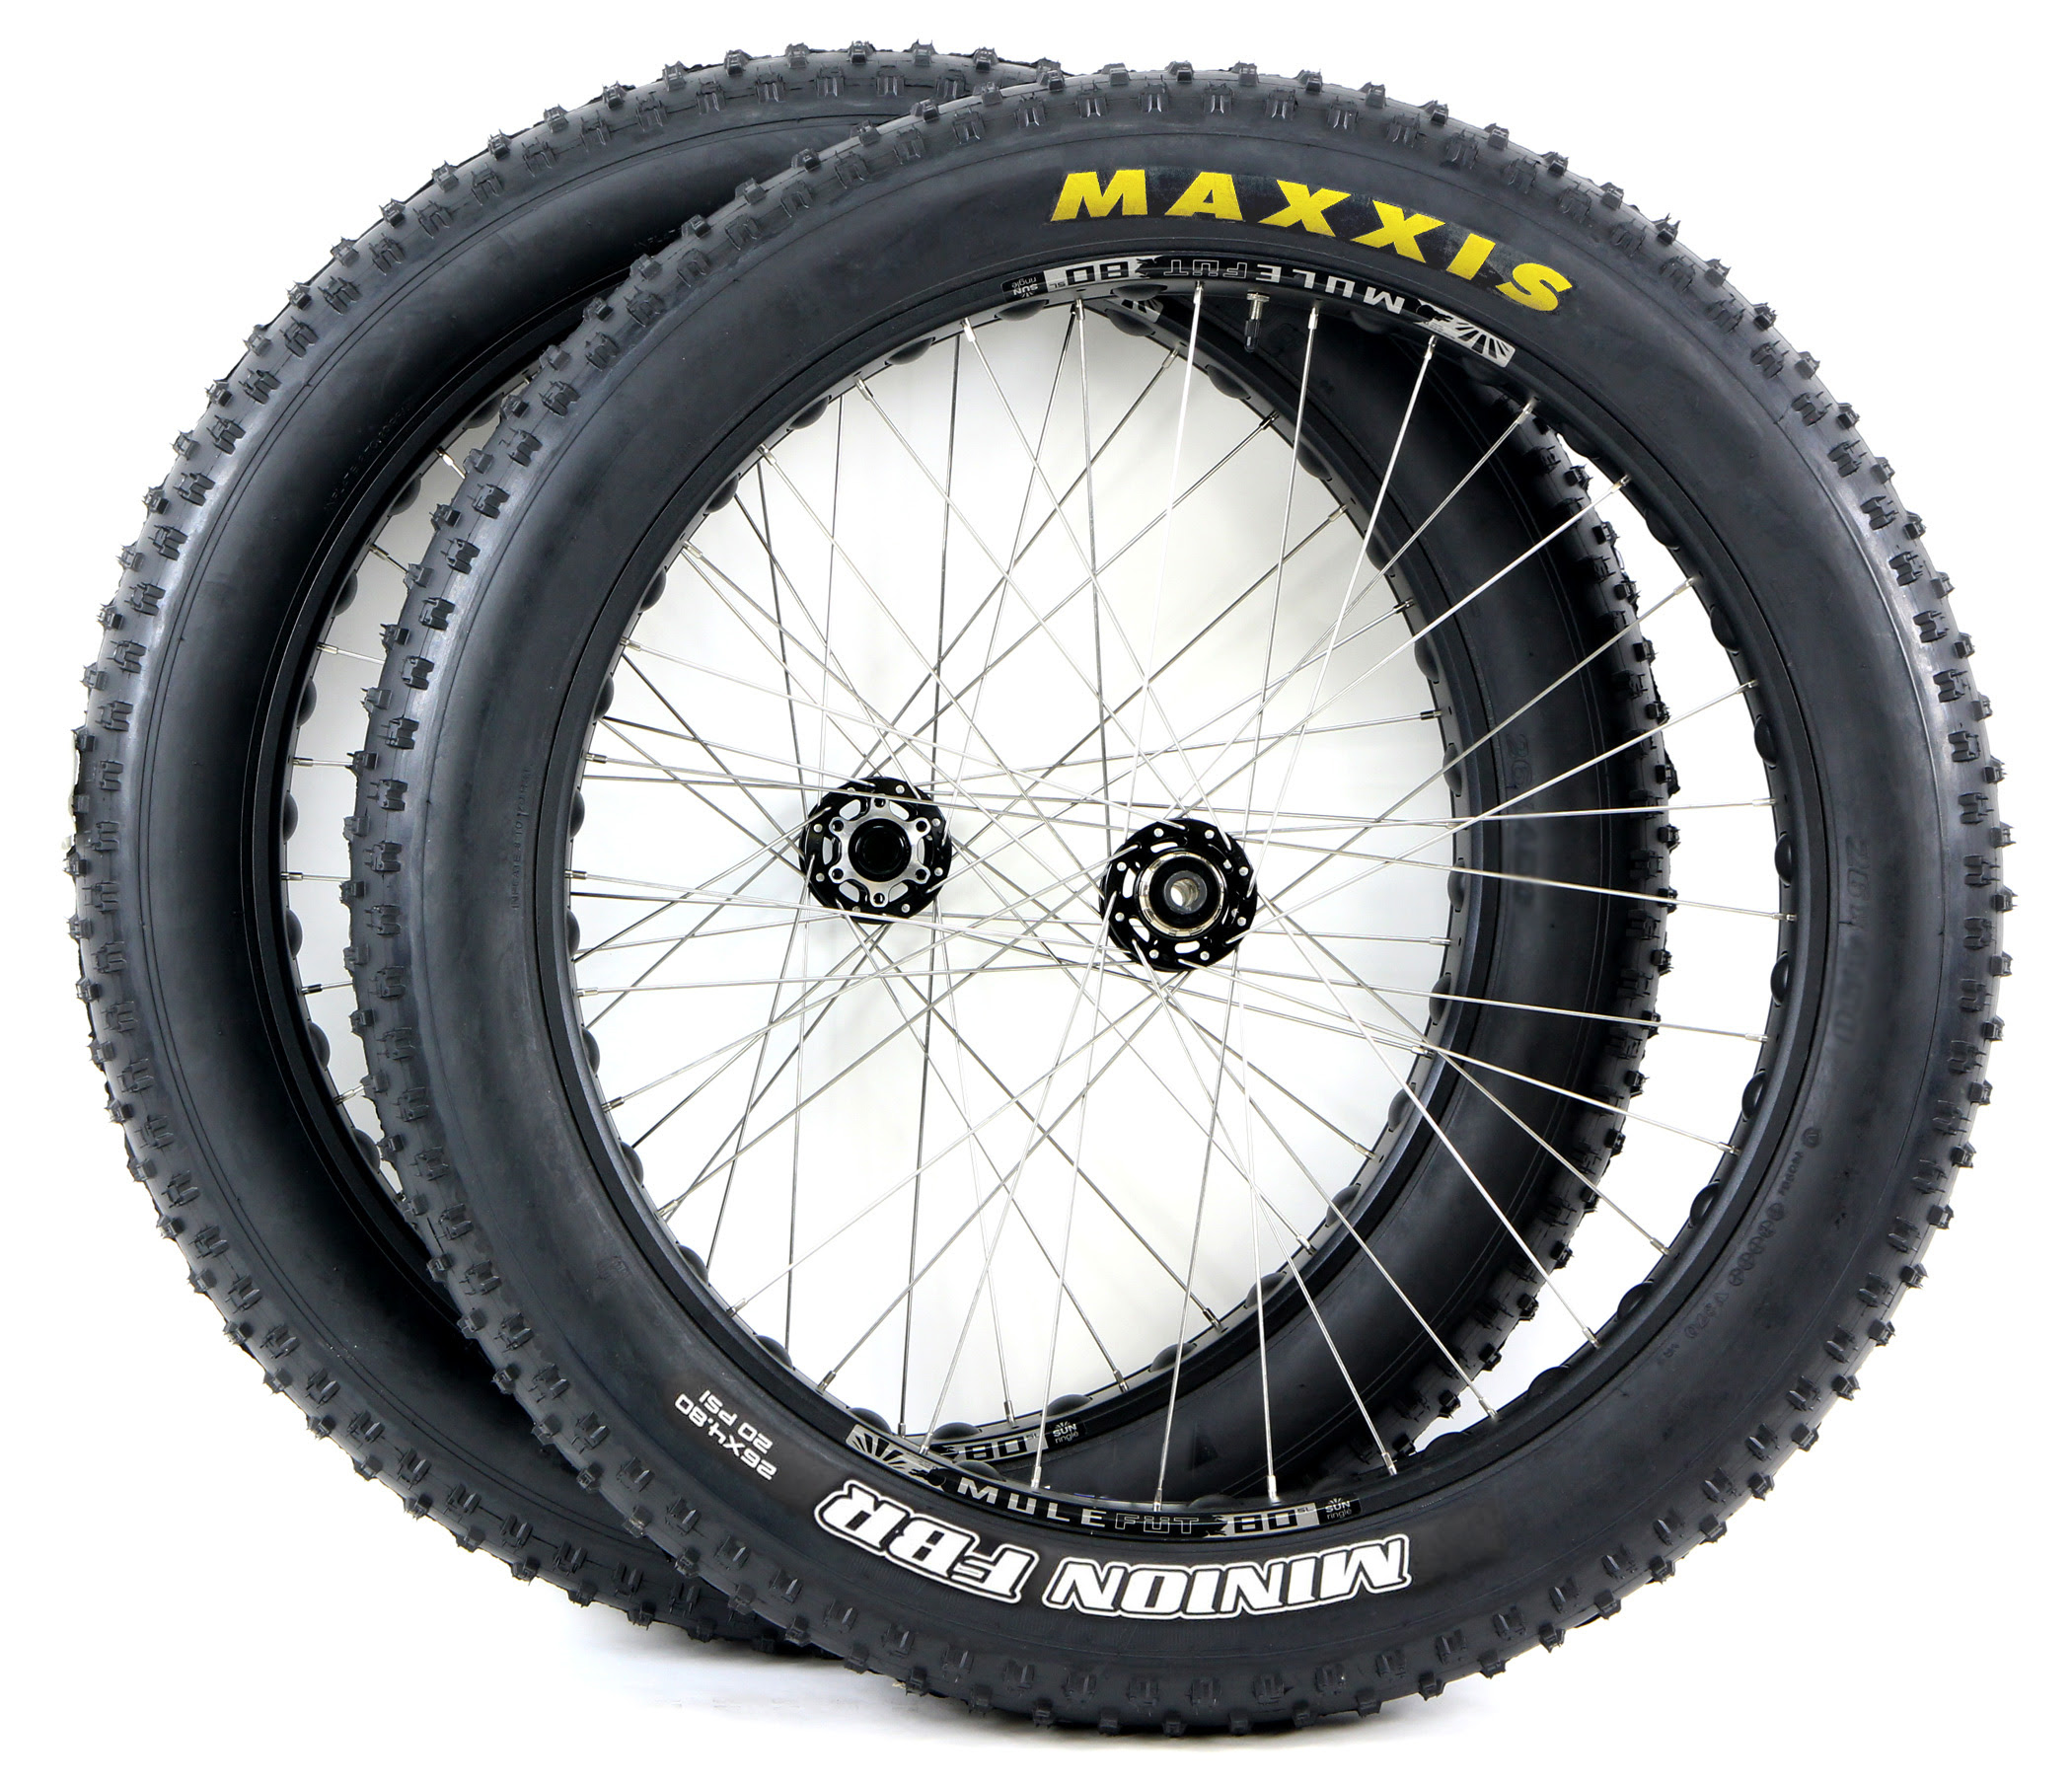 Fat Tires For Cars, Free Ship 48 States Fat Bike Wheels Promo Sale Pair Of Fatbike Sunringle Mulefut Tubeless, Fat Tires For Cars